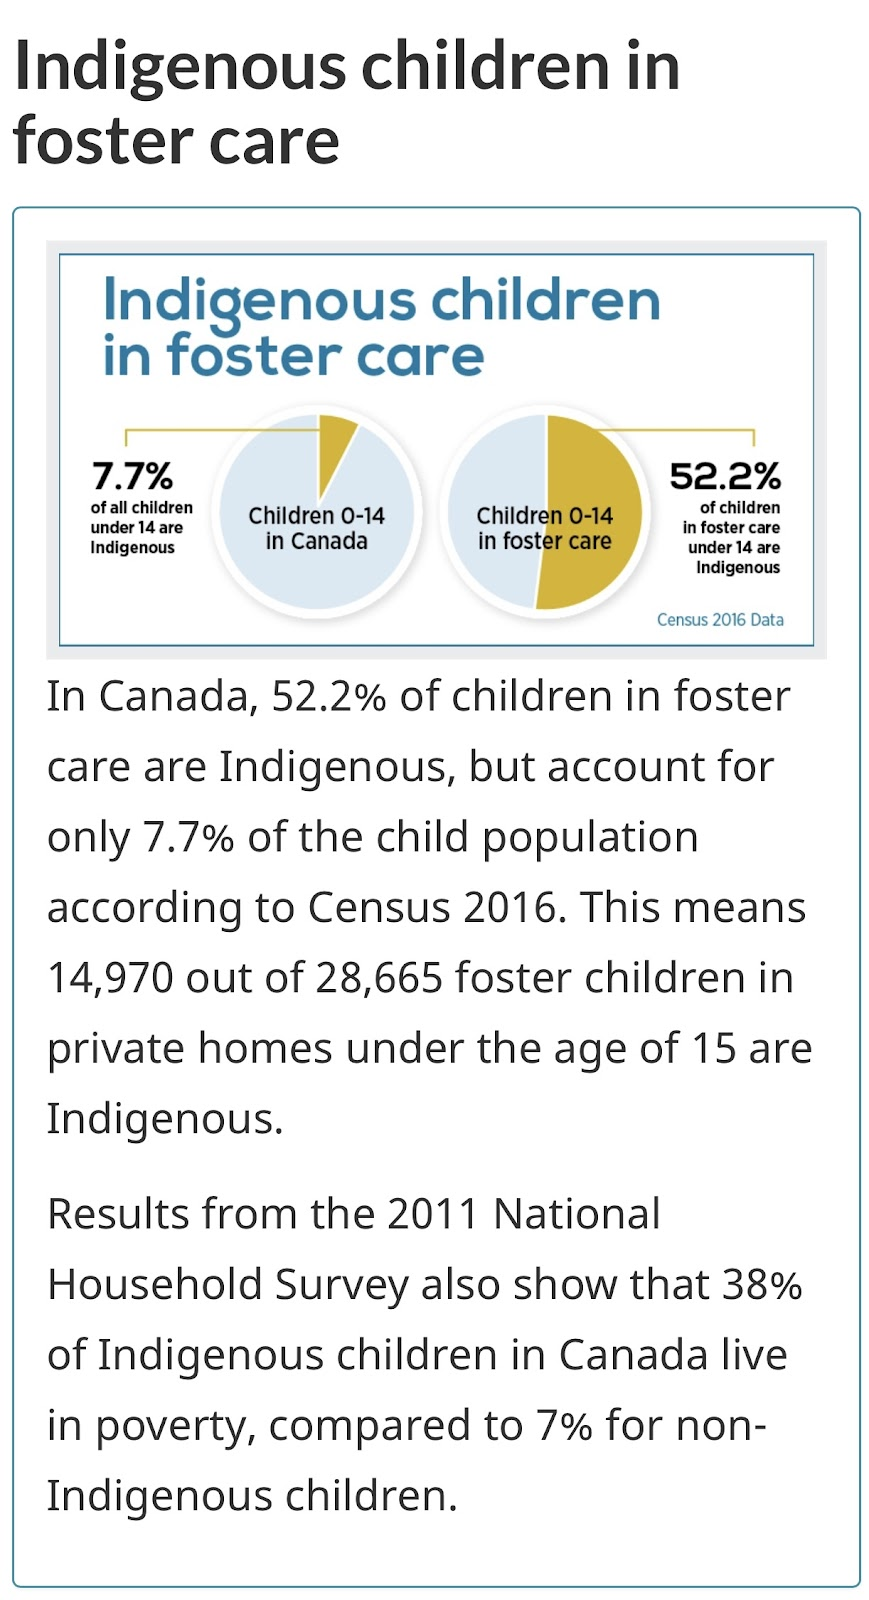 Image from the the government of Canada website detailing the rate of separation and foster care institutionalization of Indigenous children.